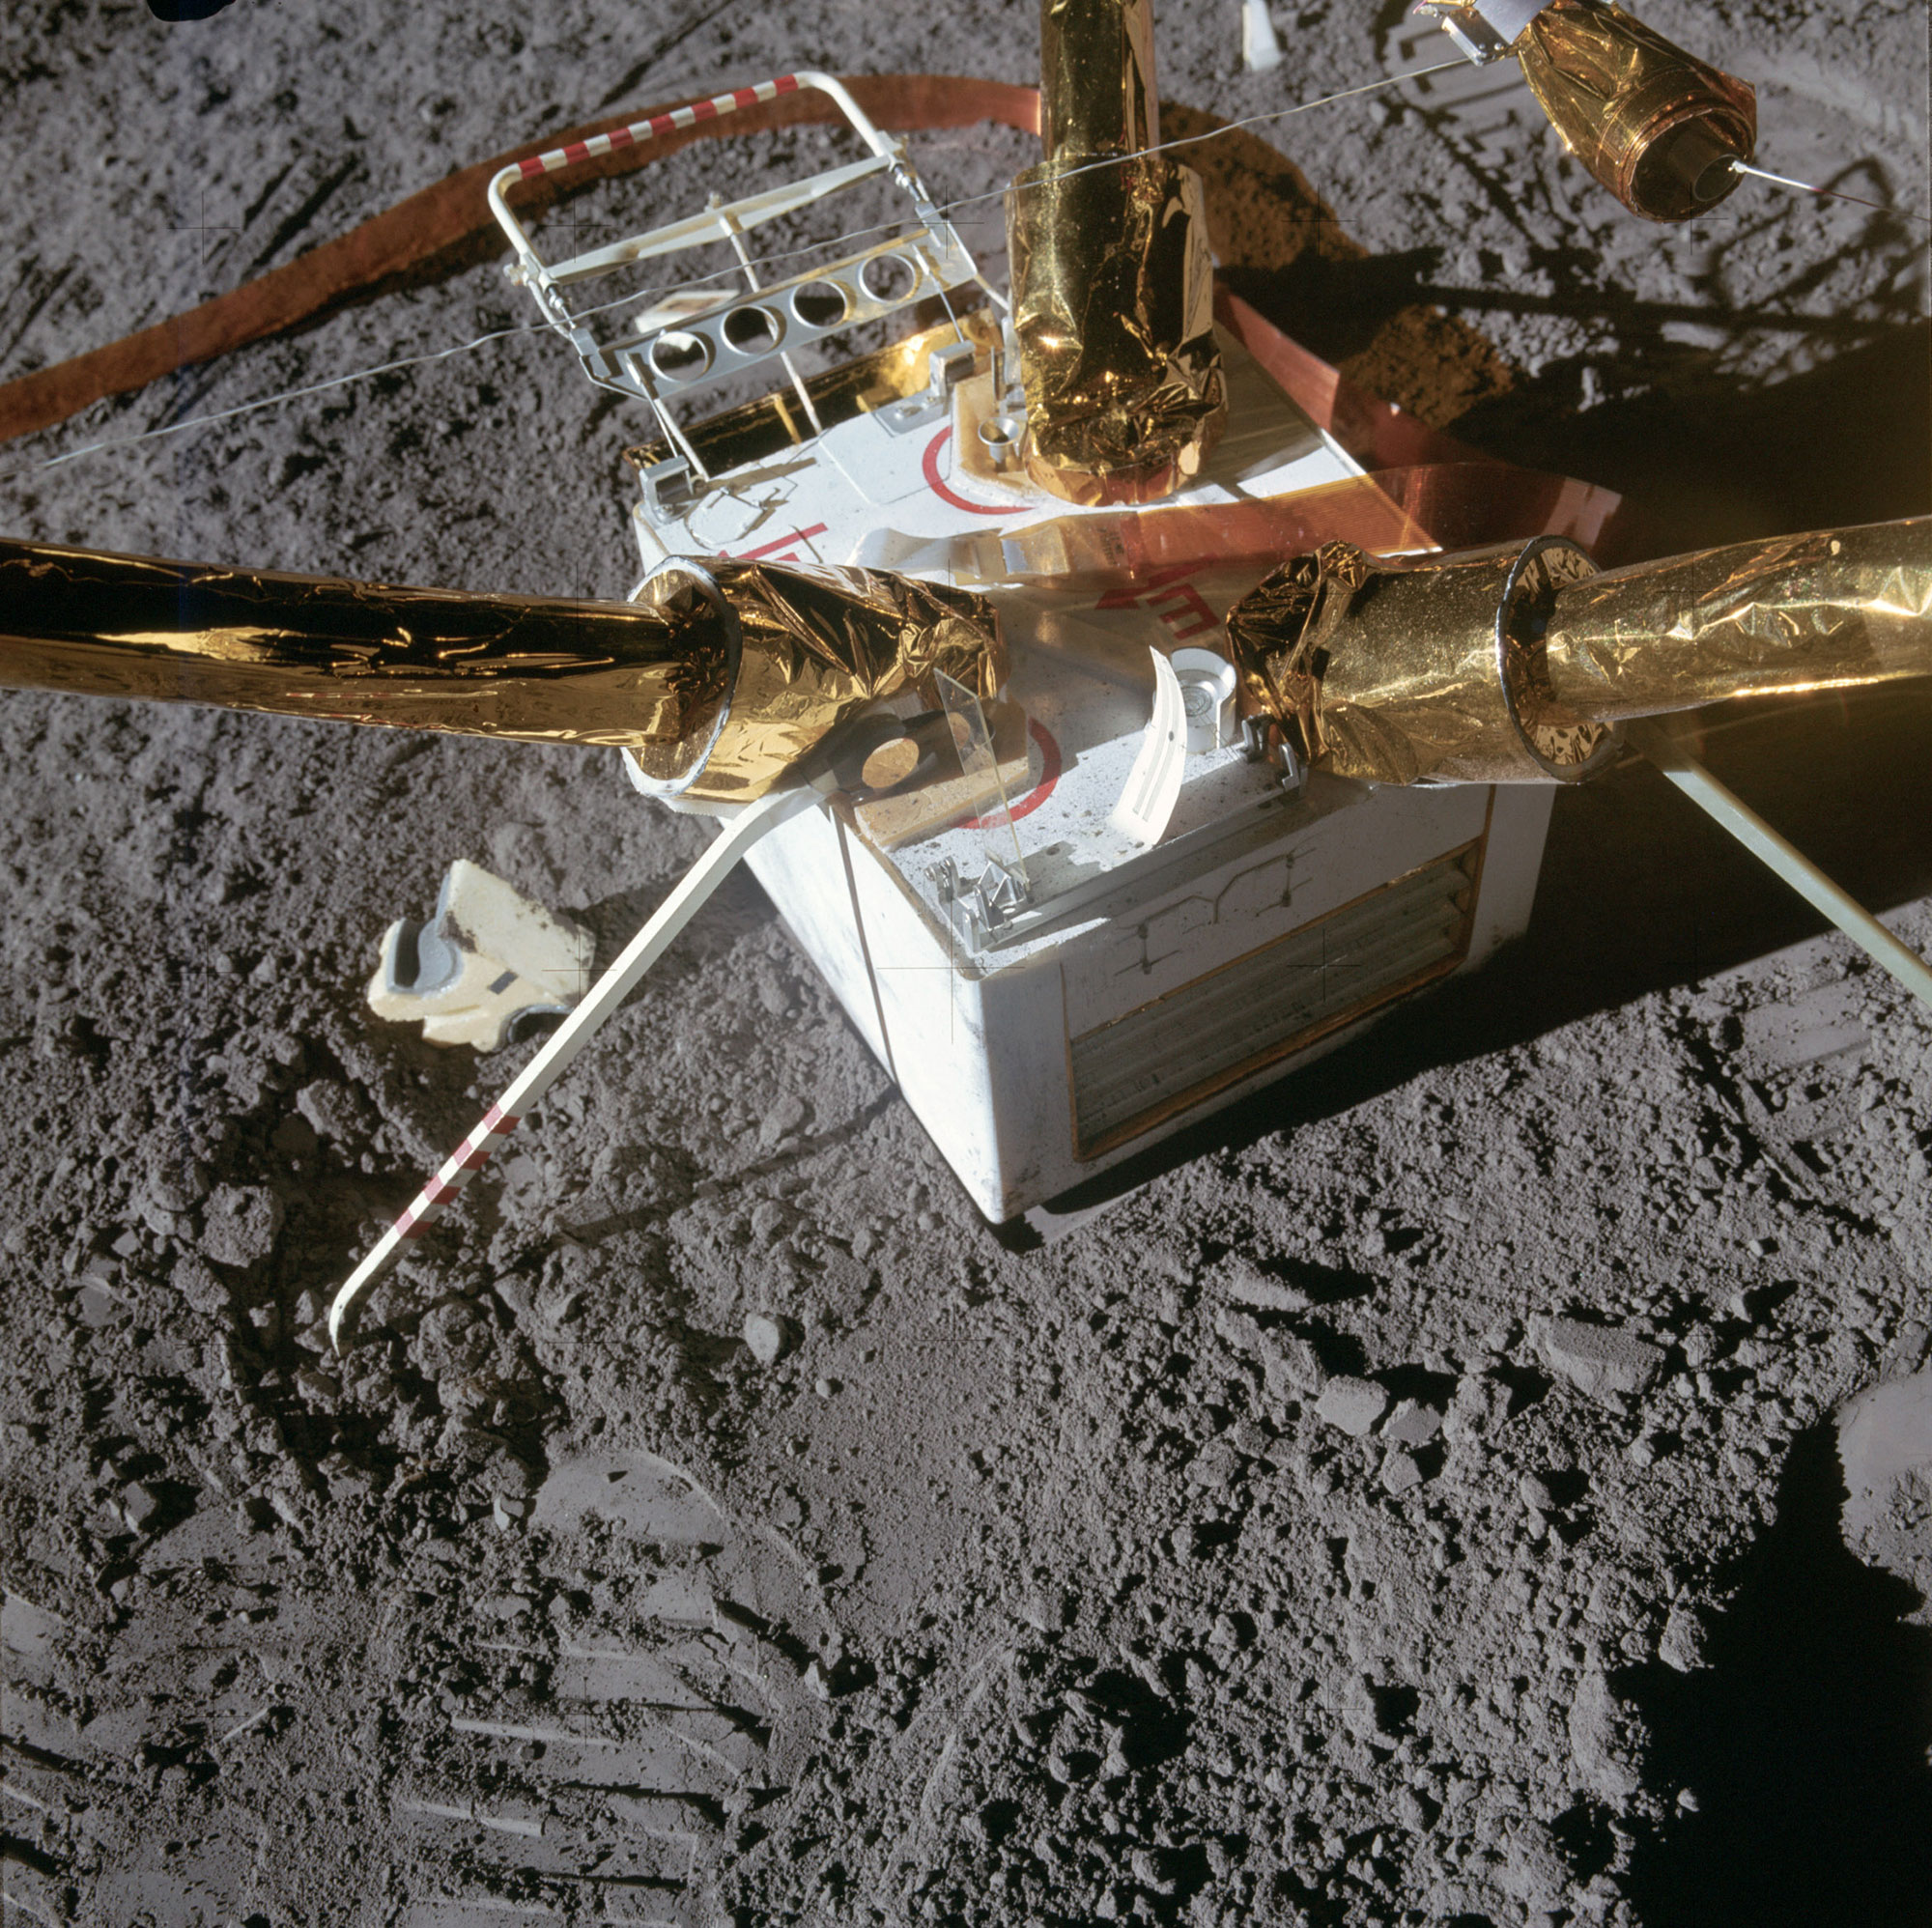 The Lunar Surface Magnetometer that was part of the mission's Apollo Lunar Surface Experiments Package. Credit: NASA via Retro Space Images